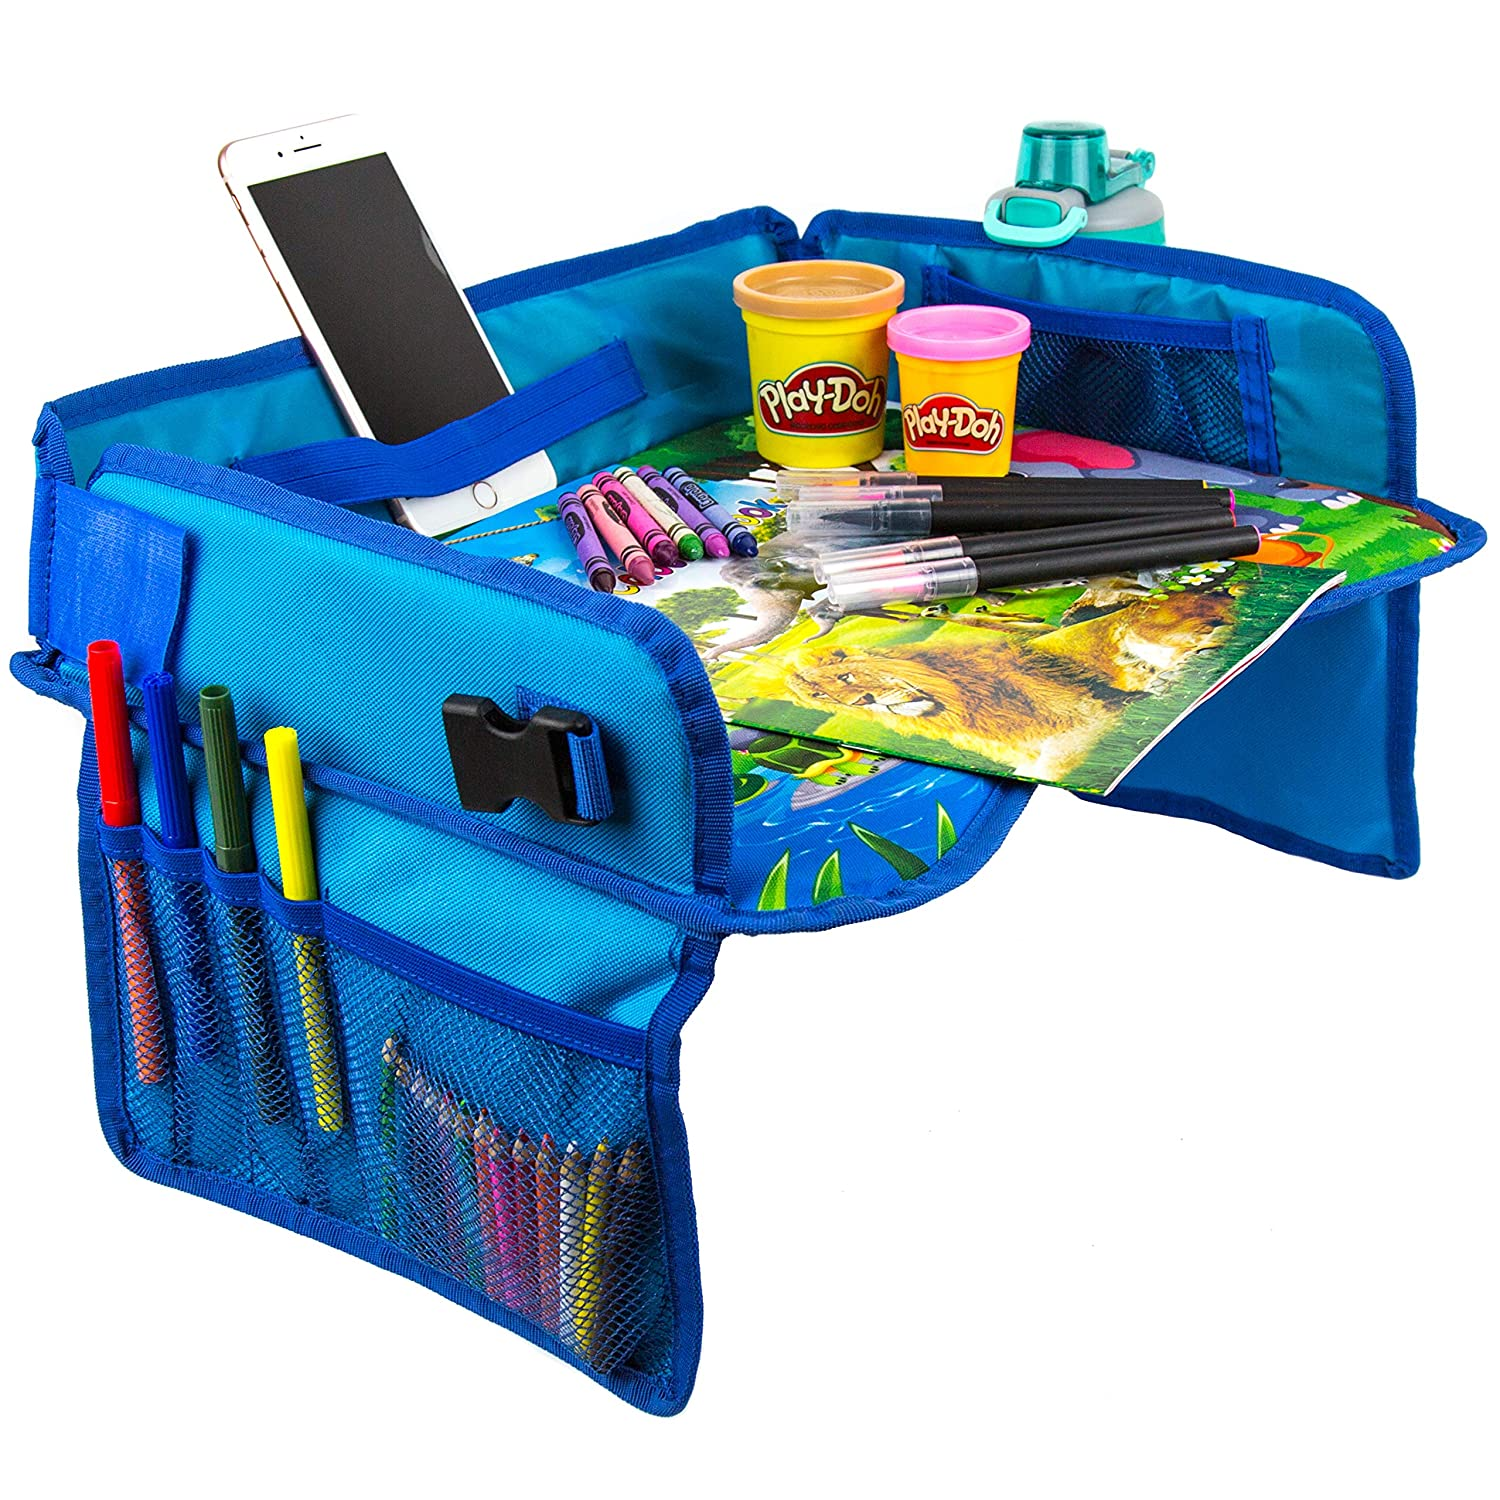 Kids Travel Tray with Coloring Activity Set by BO Innovation | Premium Child Play Tray for Car, Stroller, Plane | Toddler Car Seat Tray Organizer | EXCLUSIVE Coloring Book + Pencils Gift Set